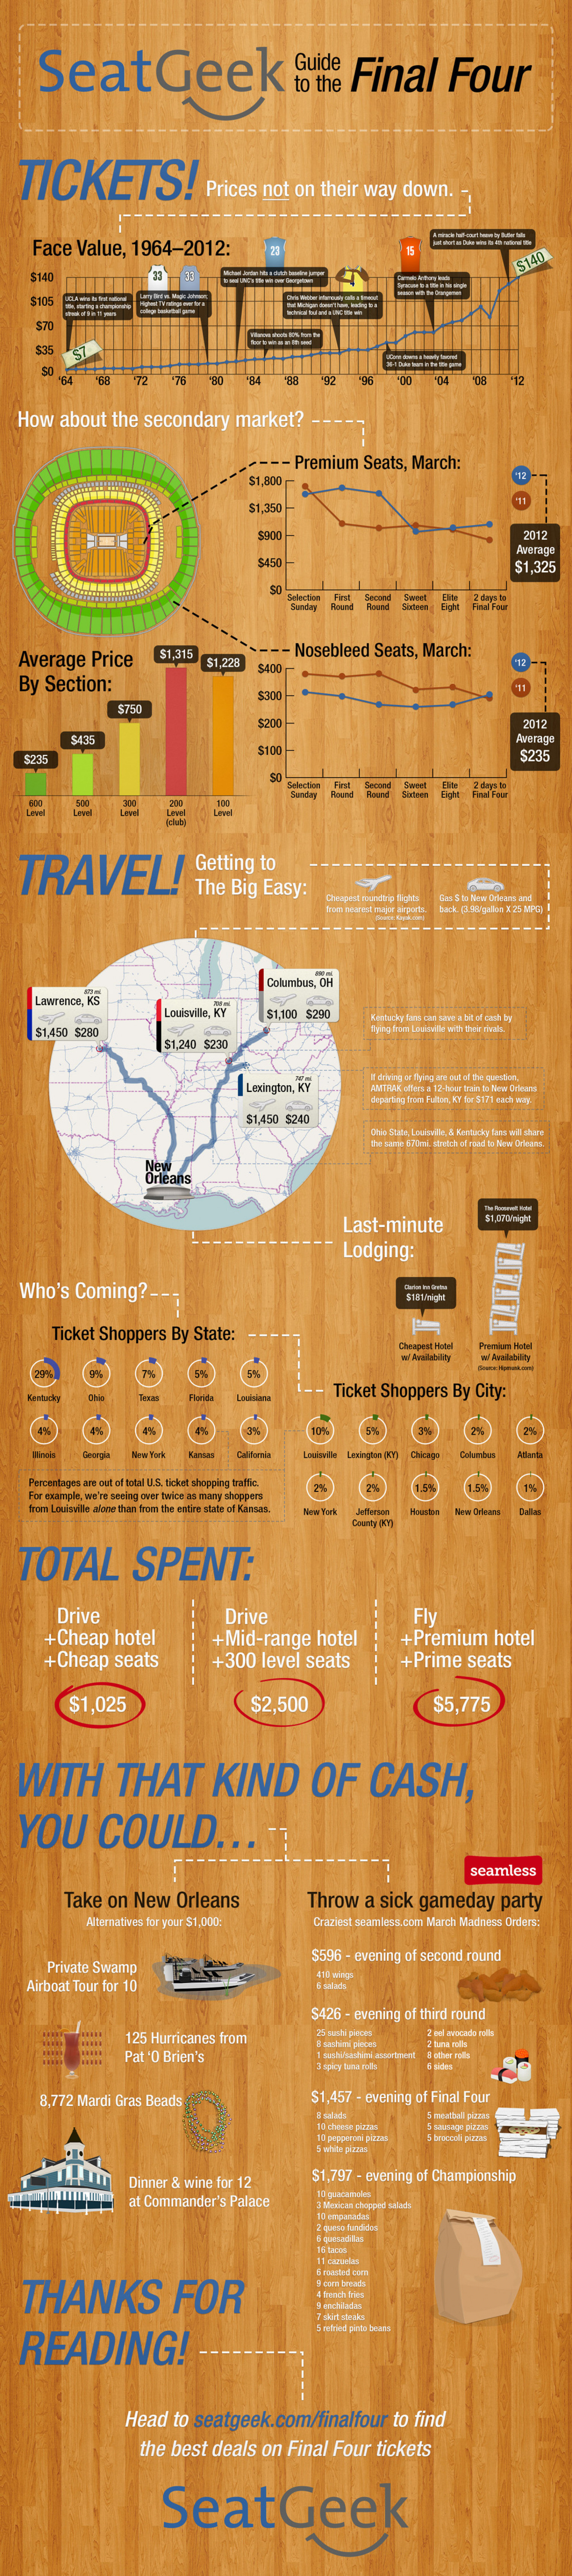 SeatGeek's Guide to the Final Four Infographic